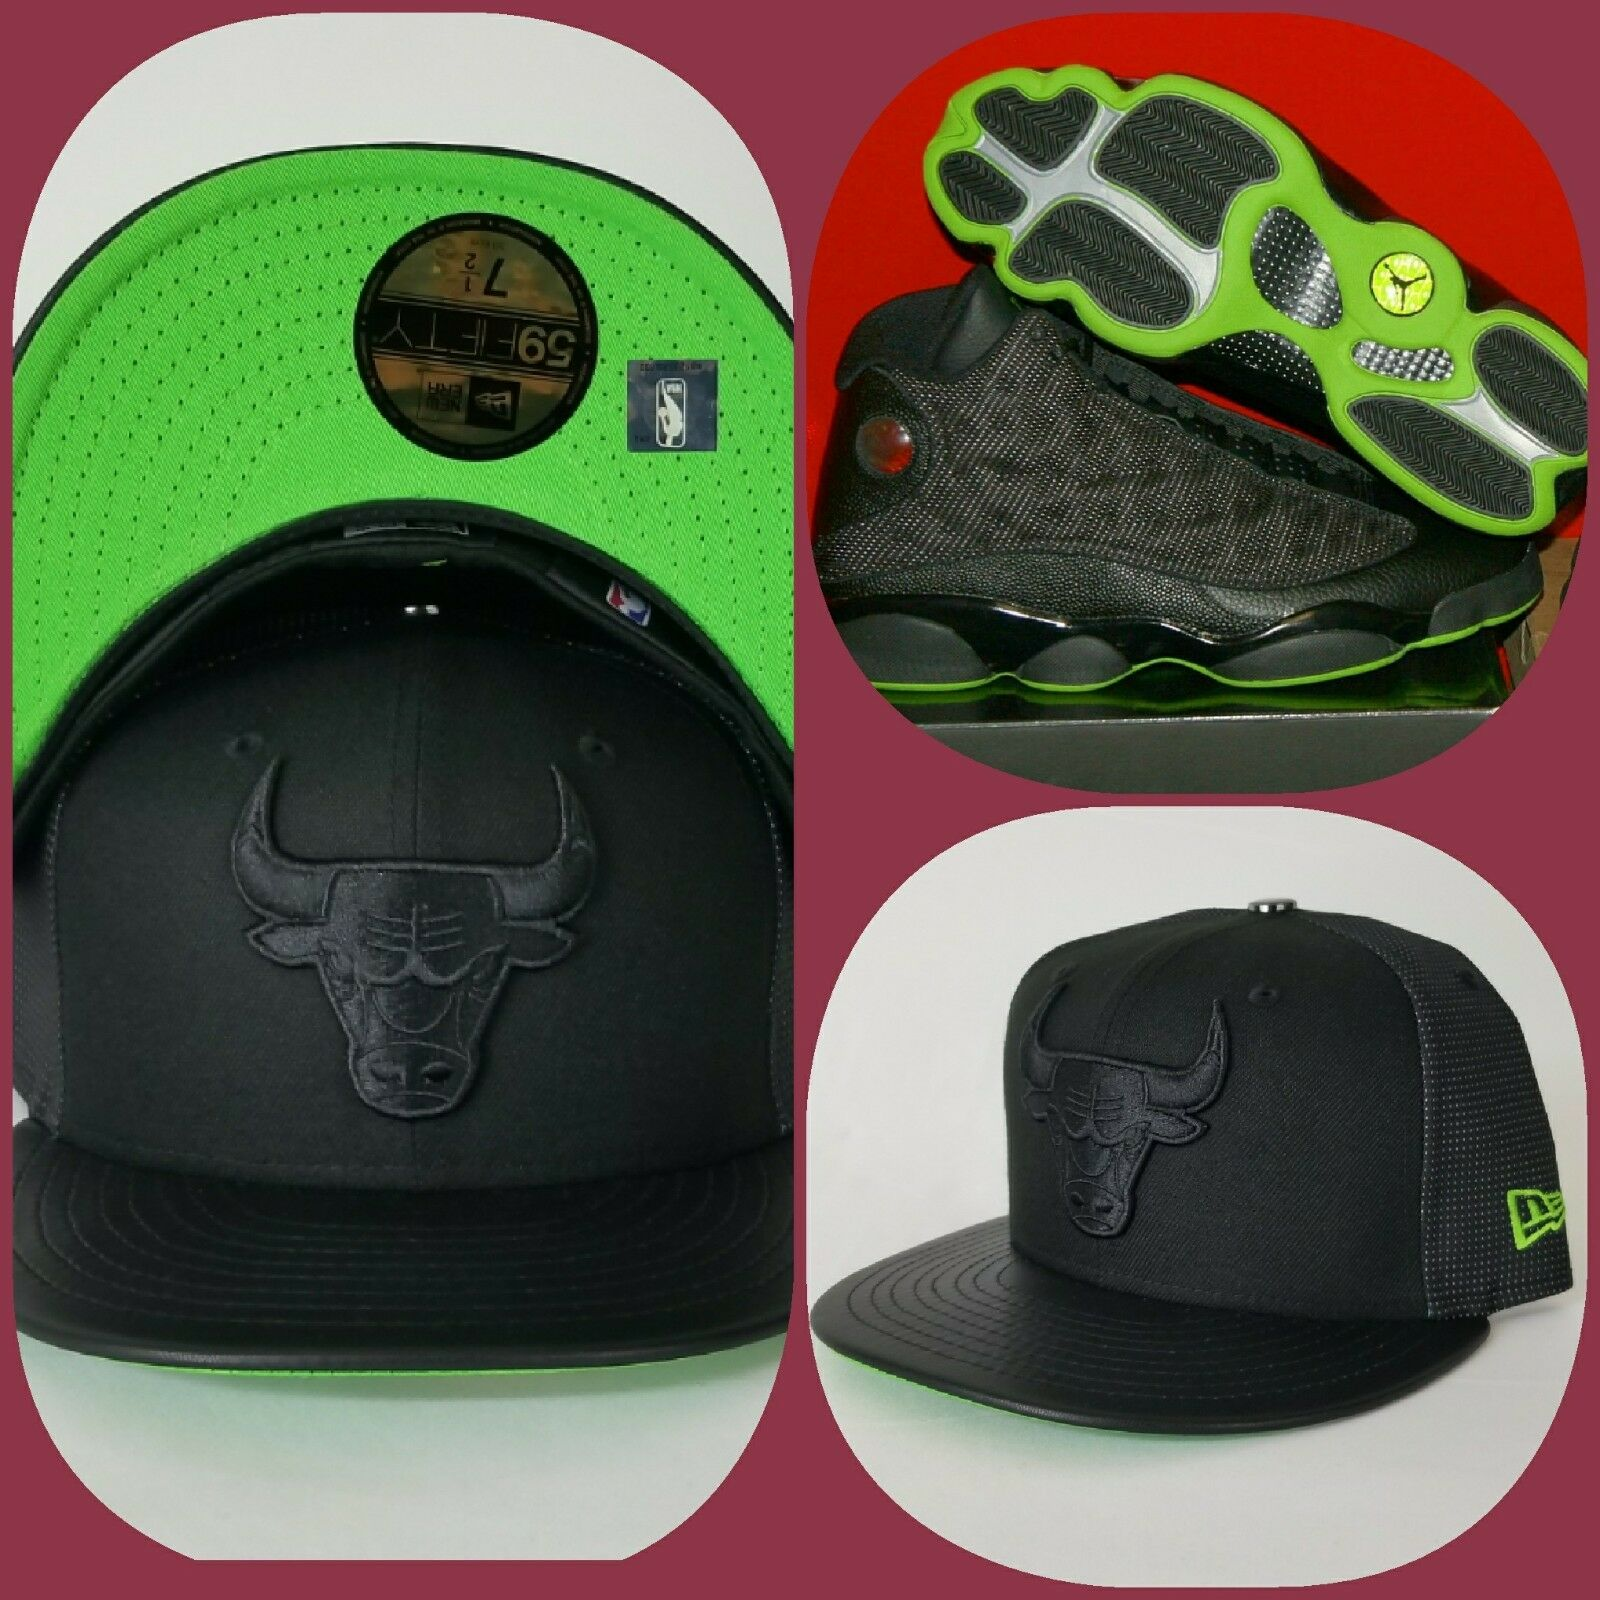 on sale 806b4 037be Details about New Era Chicago Bulls 59Fifty Fitted hat Jordan 13 Black  Altitude Green